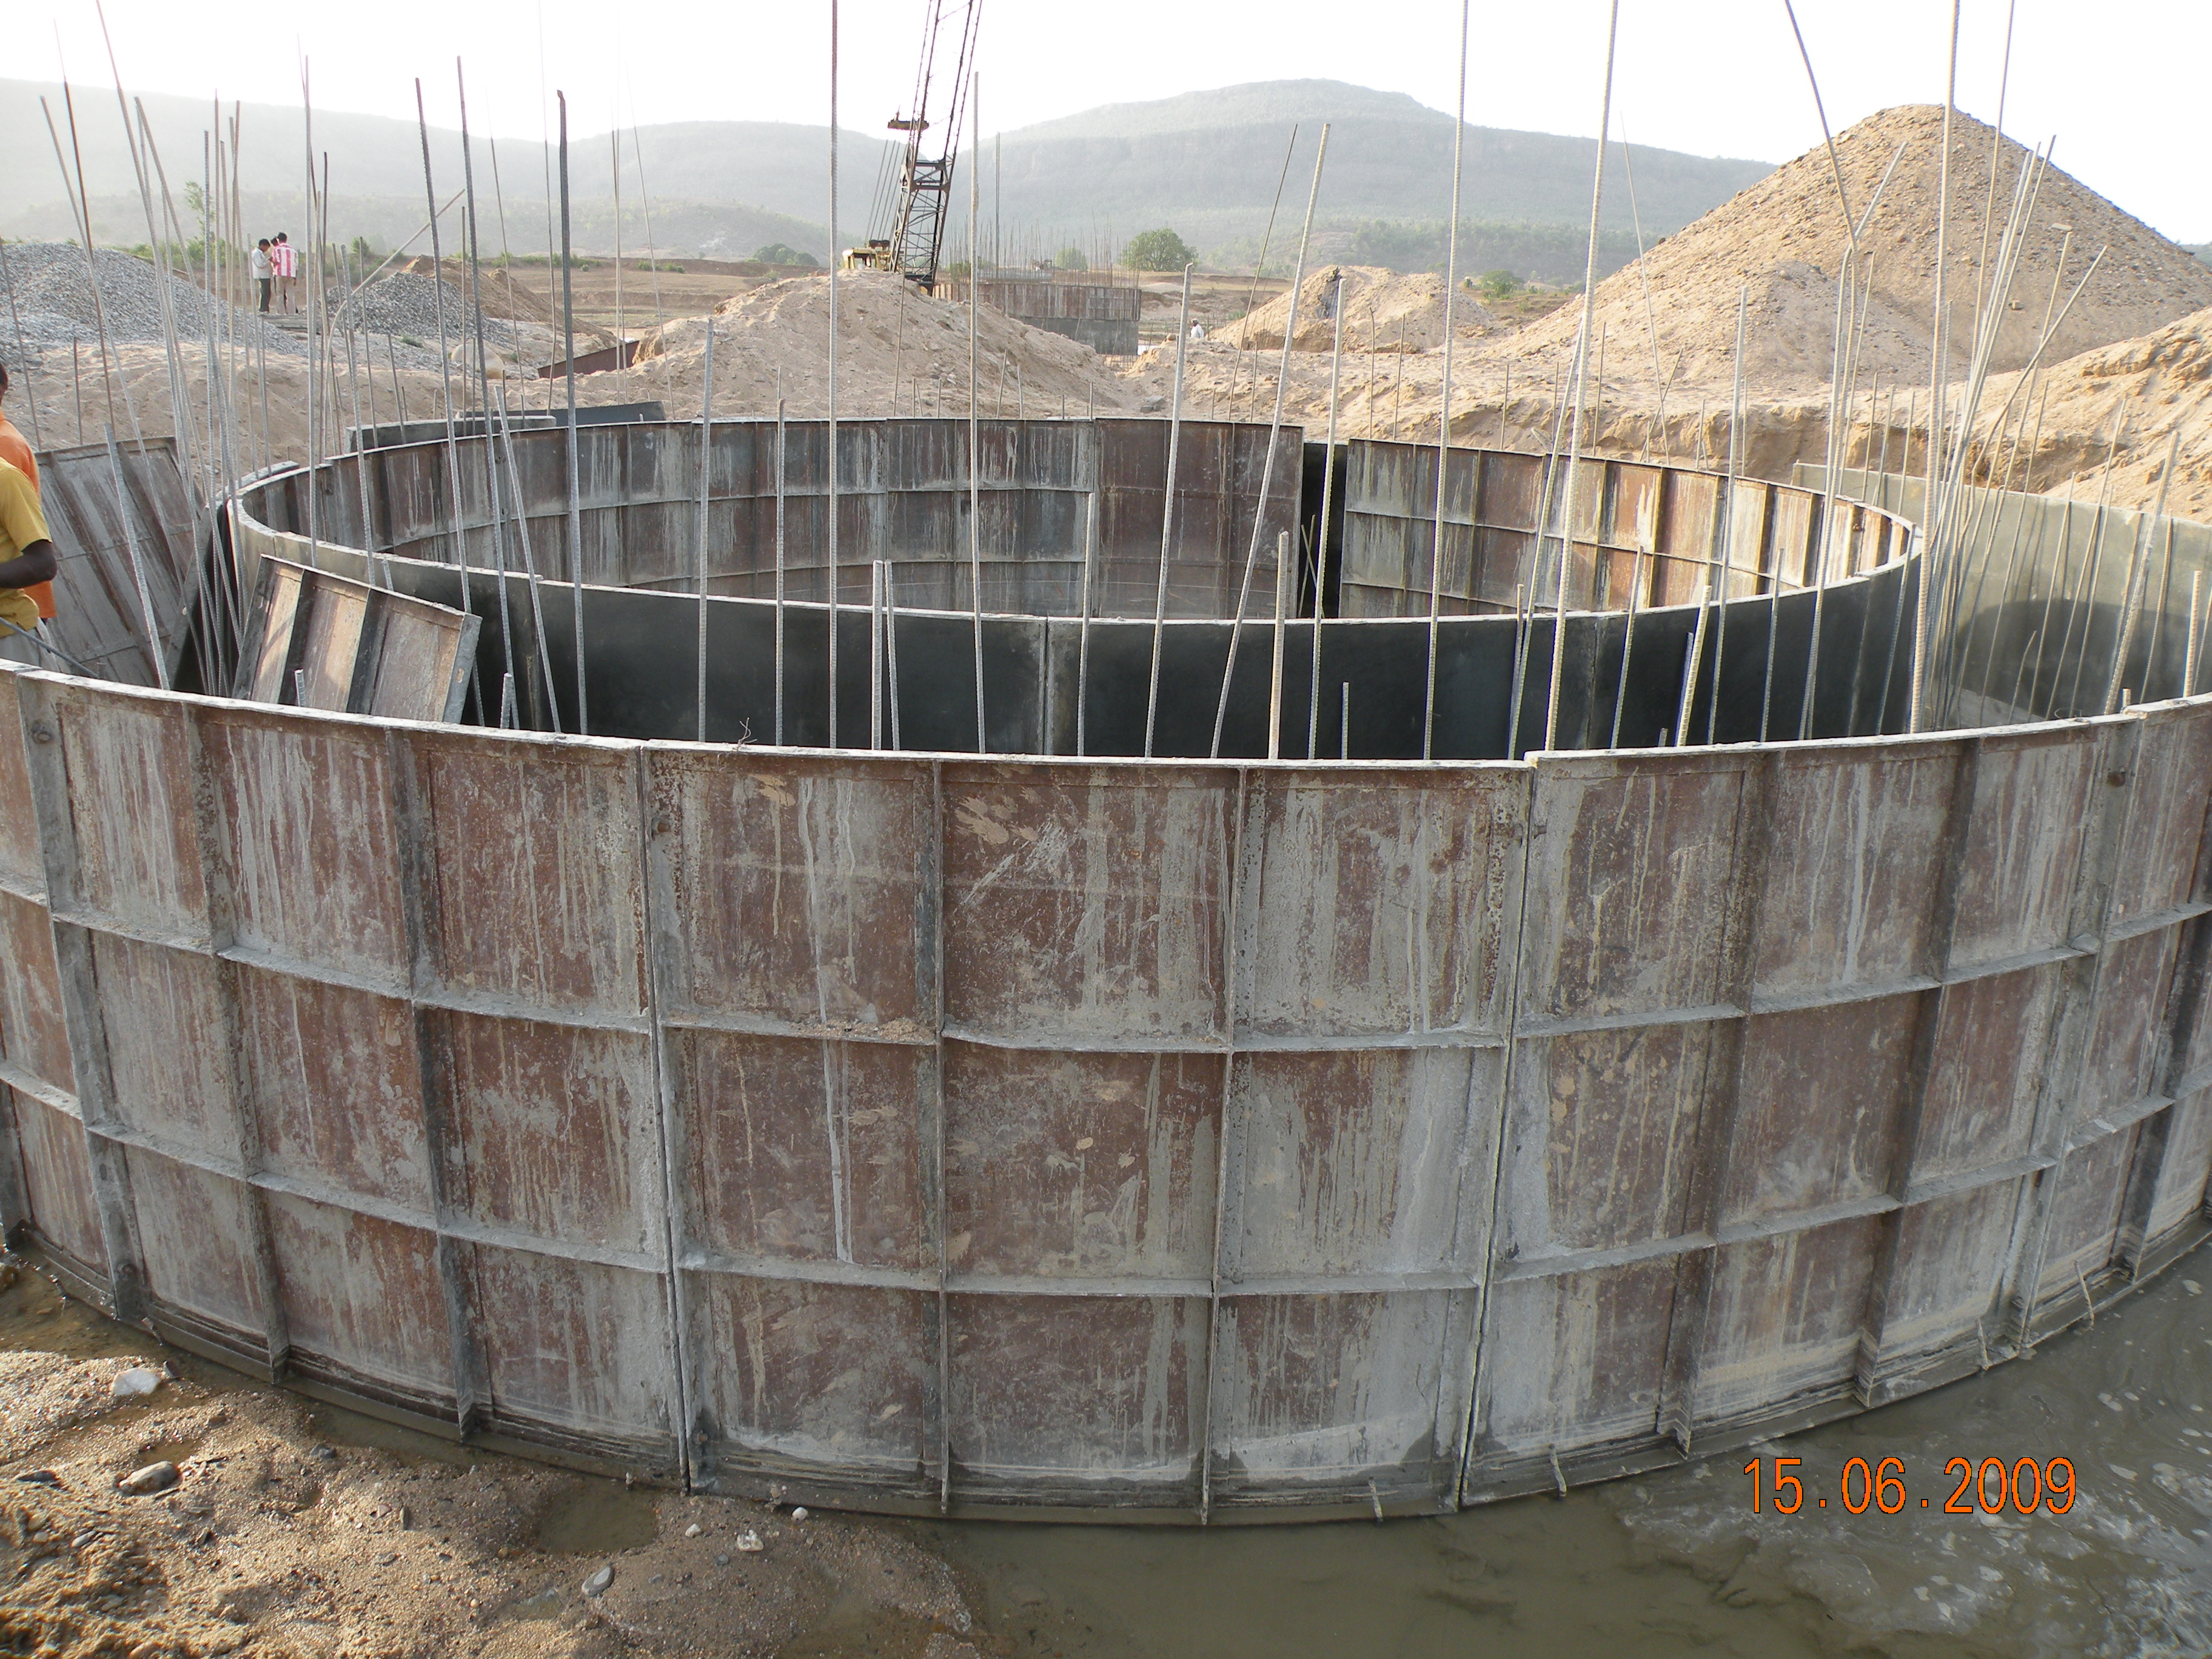 20000 m<sup>3</sup>/hr Raw Water Supply for 3960 MW UMPP of Reliance Power at Chitrangi, Dist. Singrauli, MP; including detailed source reliability analysis